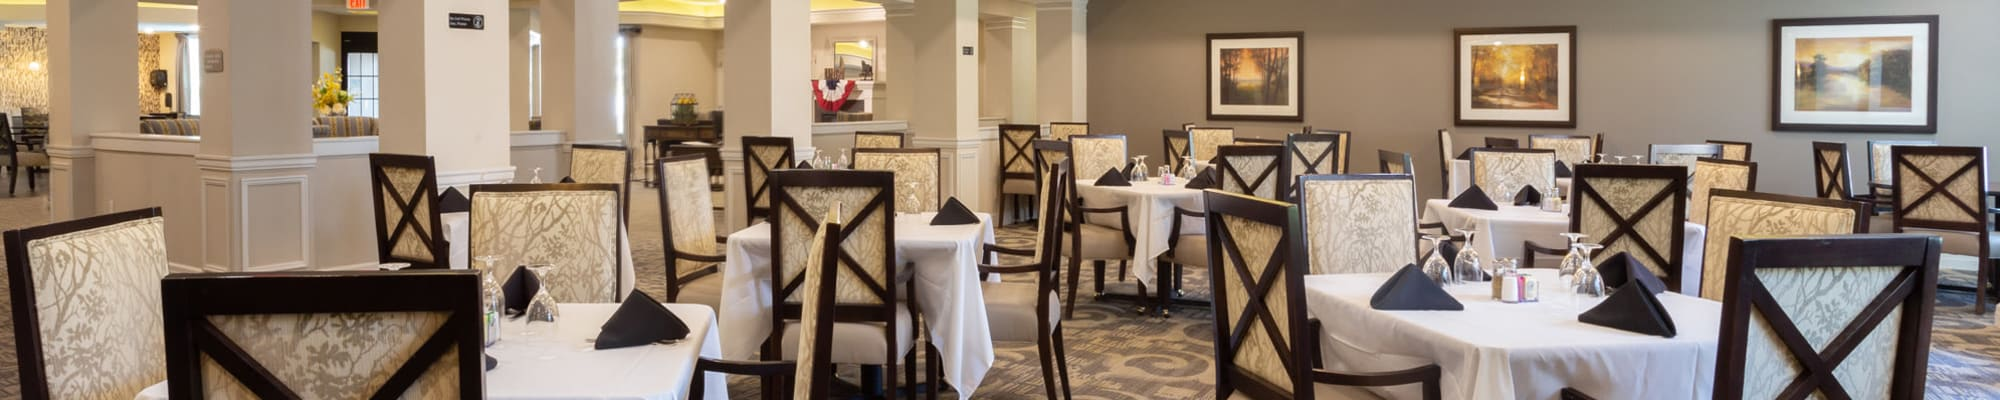 Dining at Harmony at Five Forks in Simpsonville, South Carolina